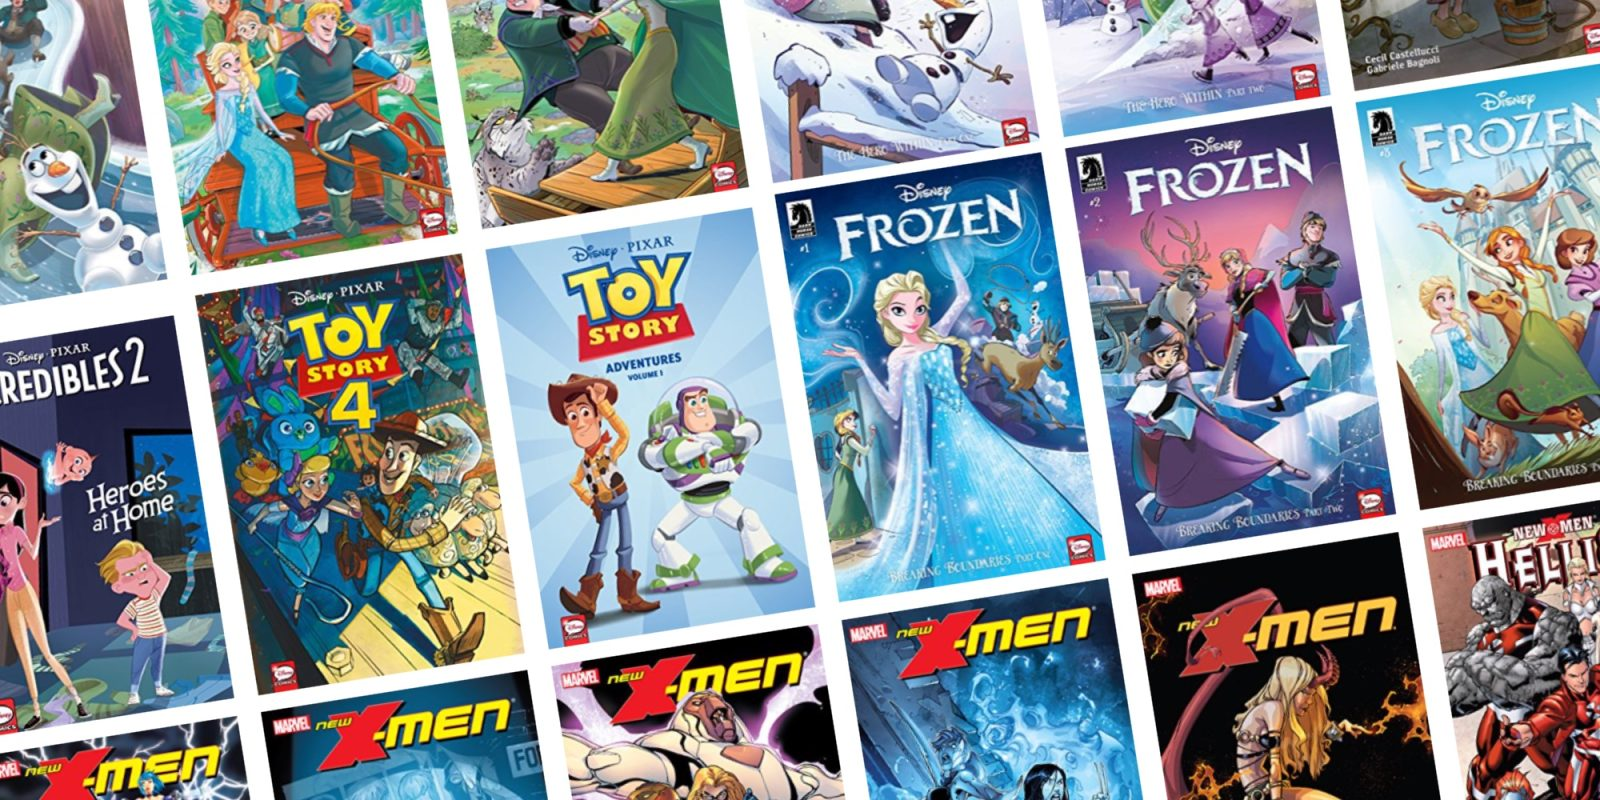 Score Frozen, Toy Story, and other Disney comics on sale from $1 at ComiXology